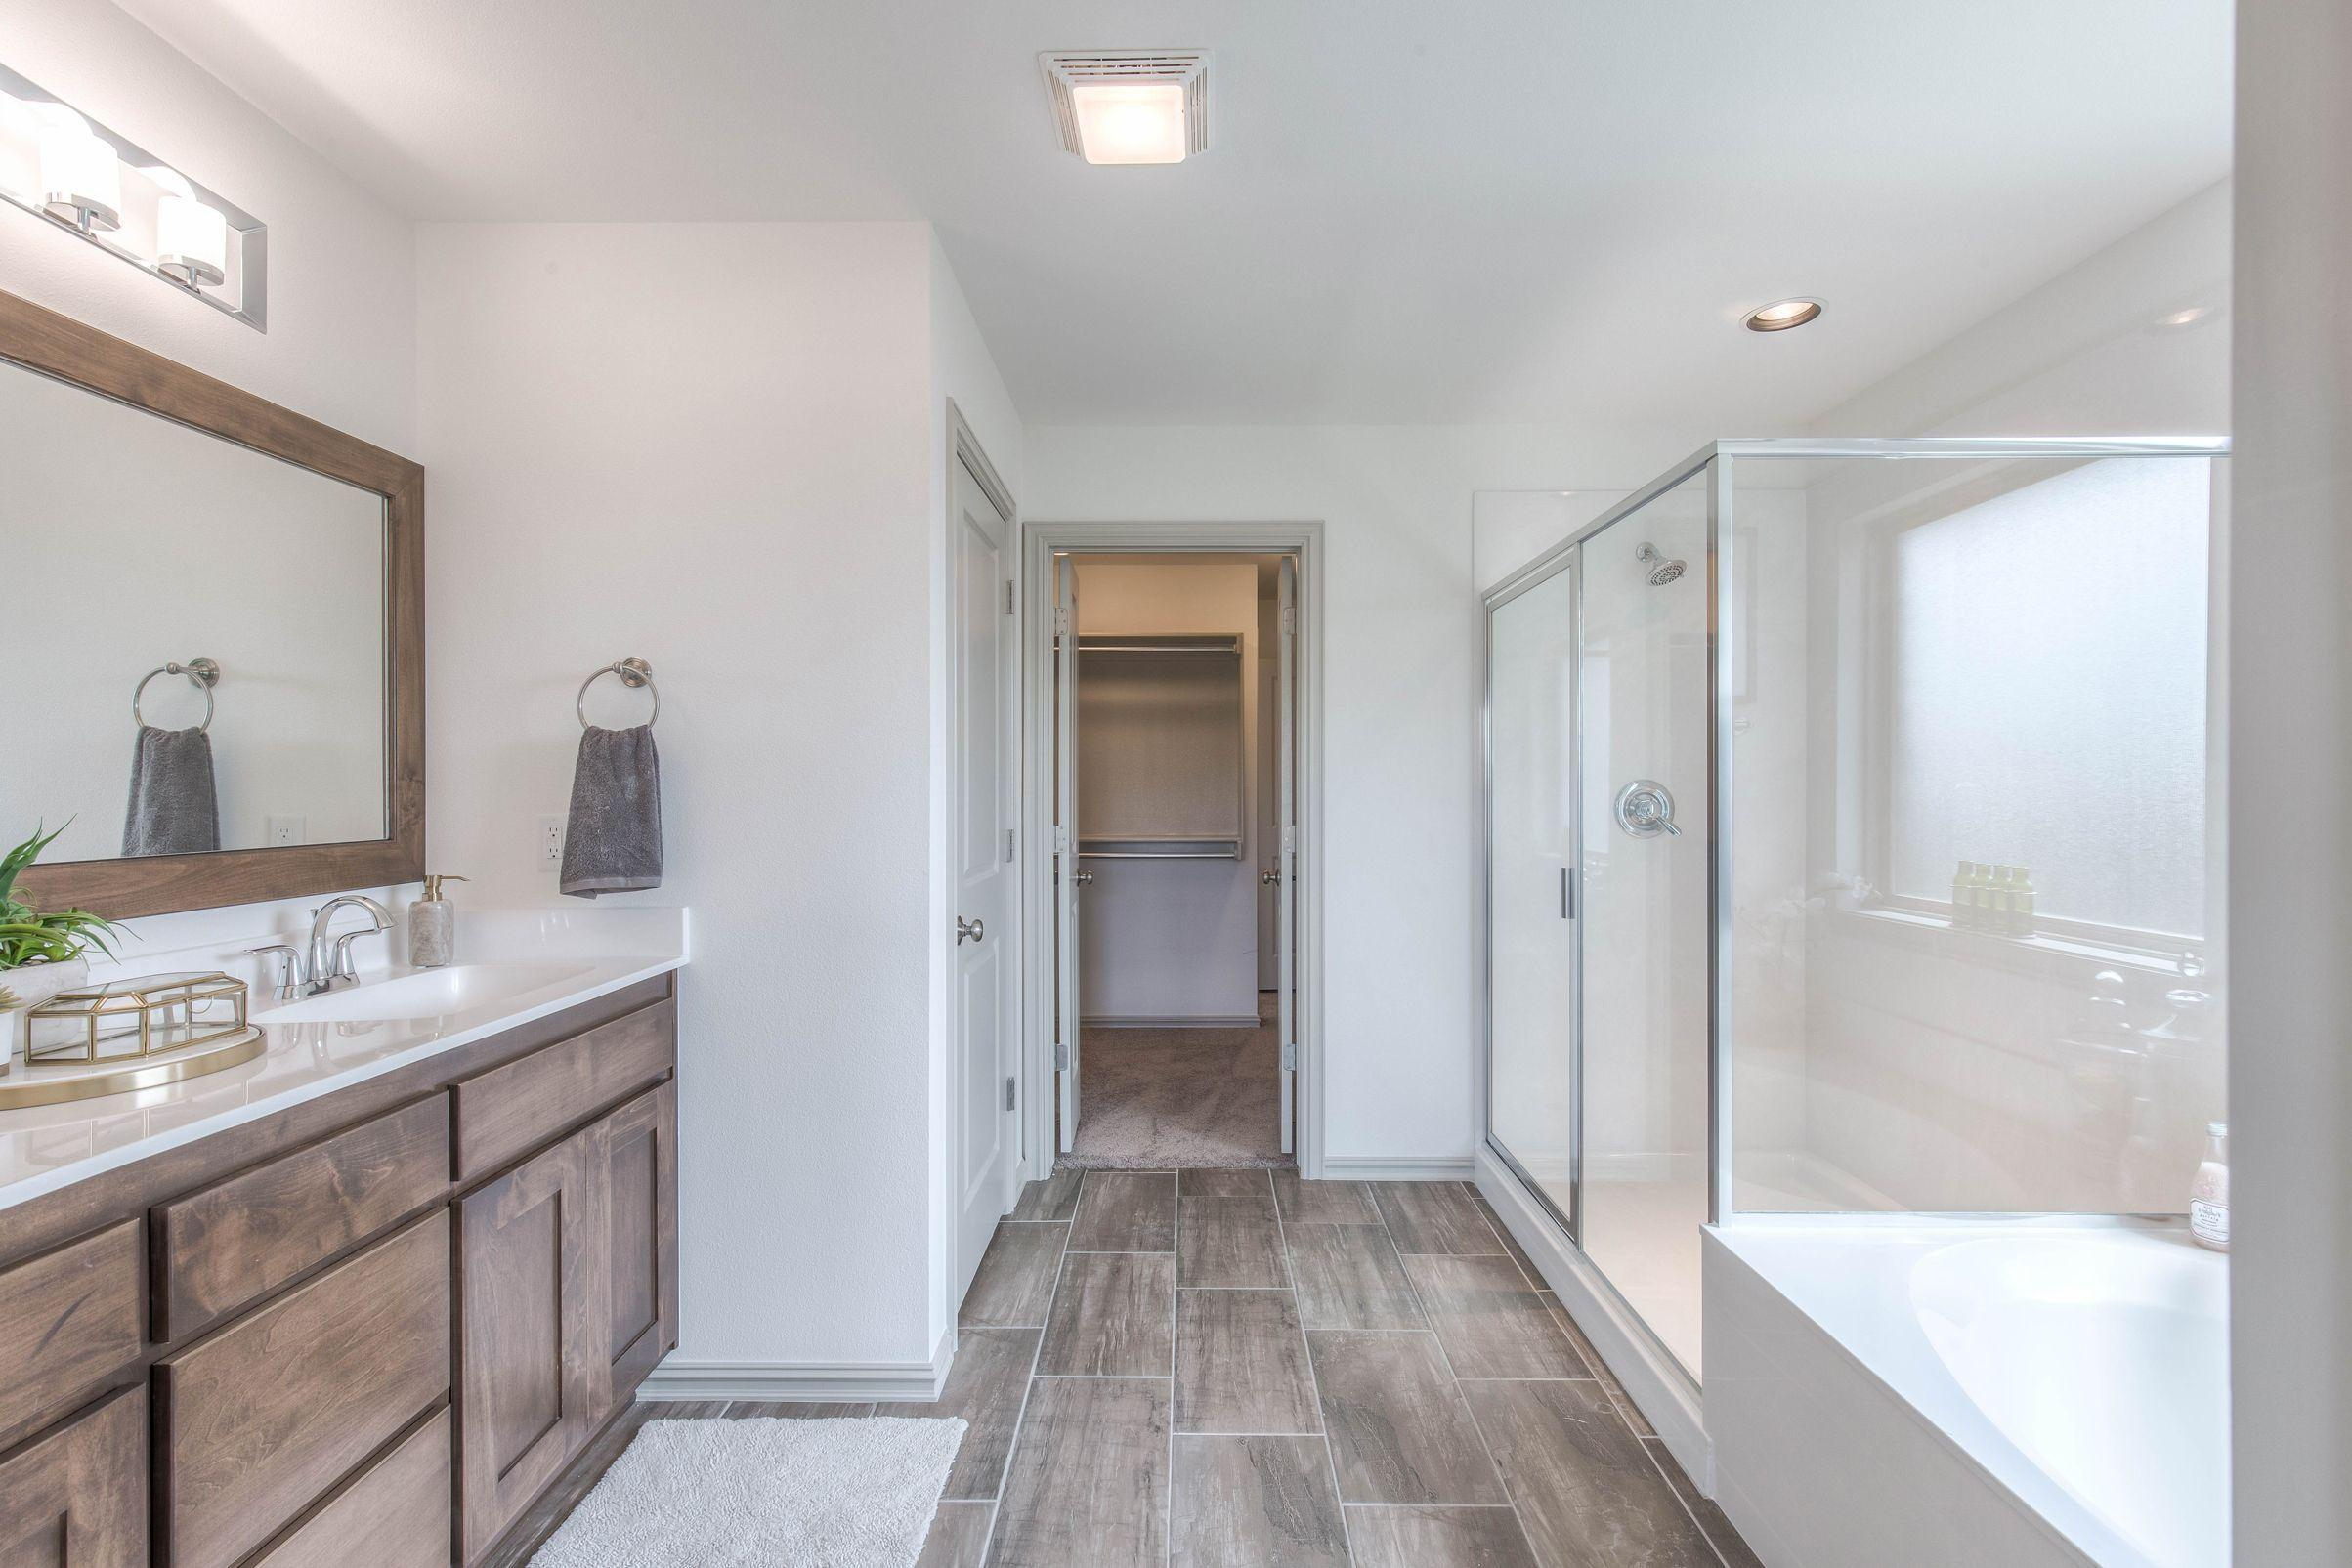 Bathroom featured in the Izzy II Up By Concept Builders, Inc in Tulsa, OK